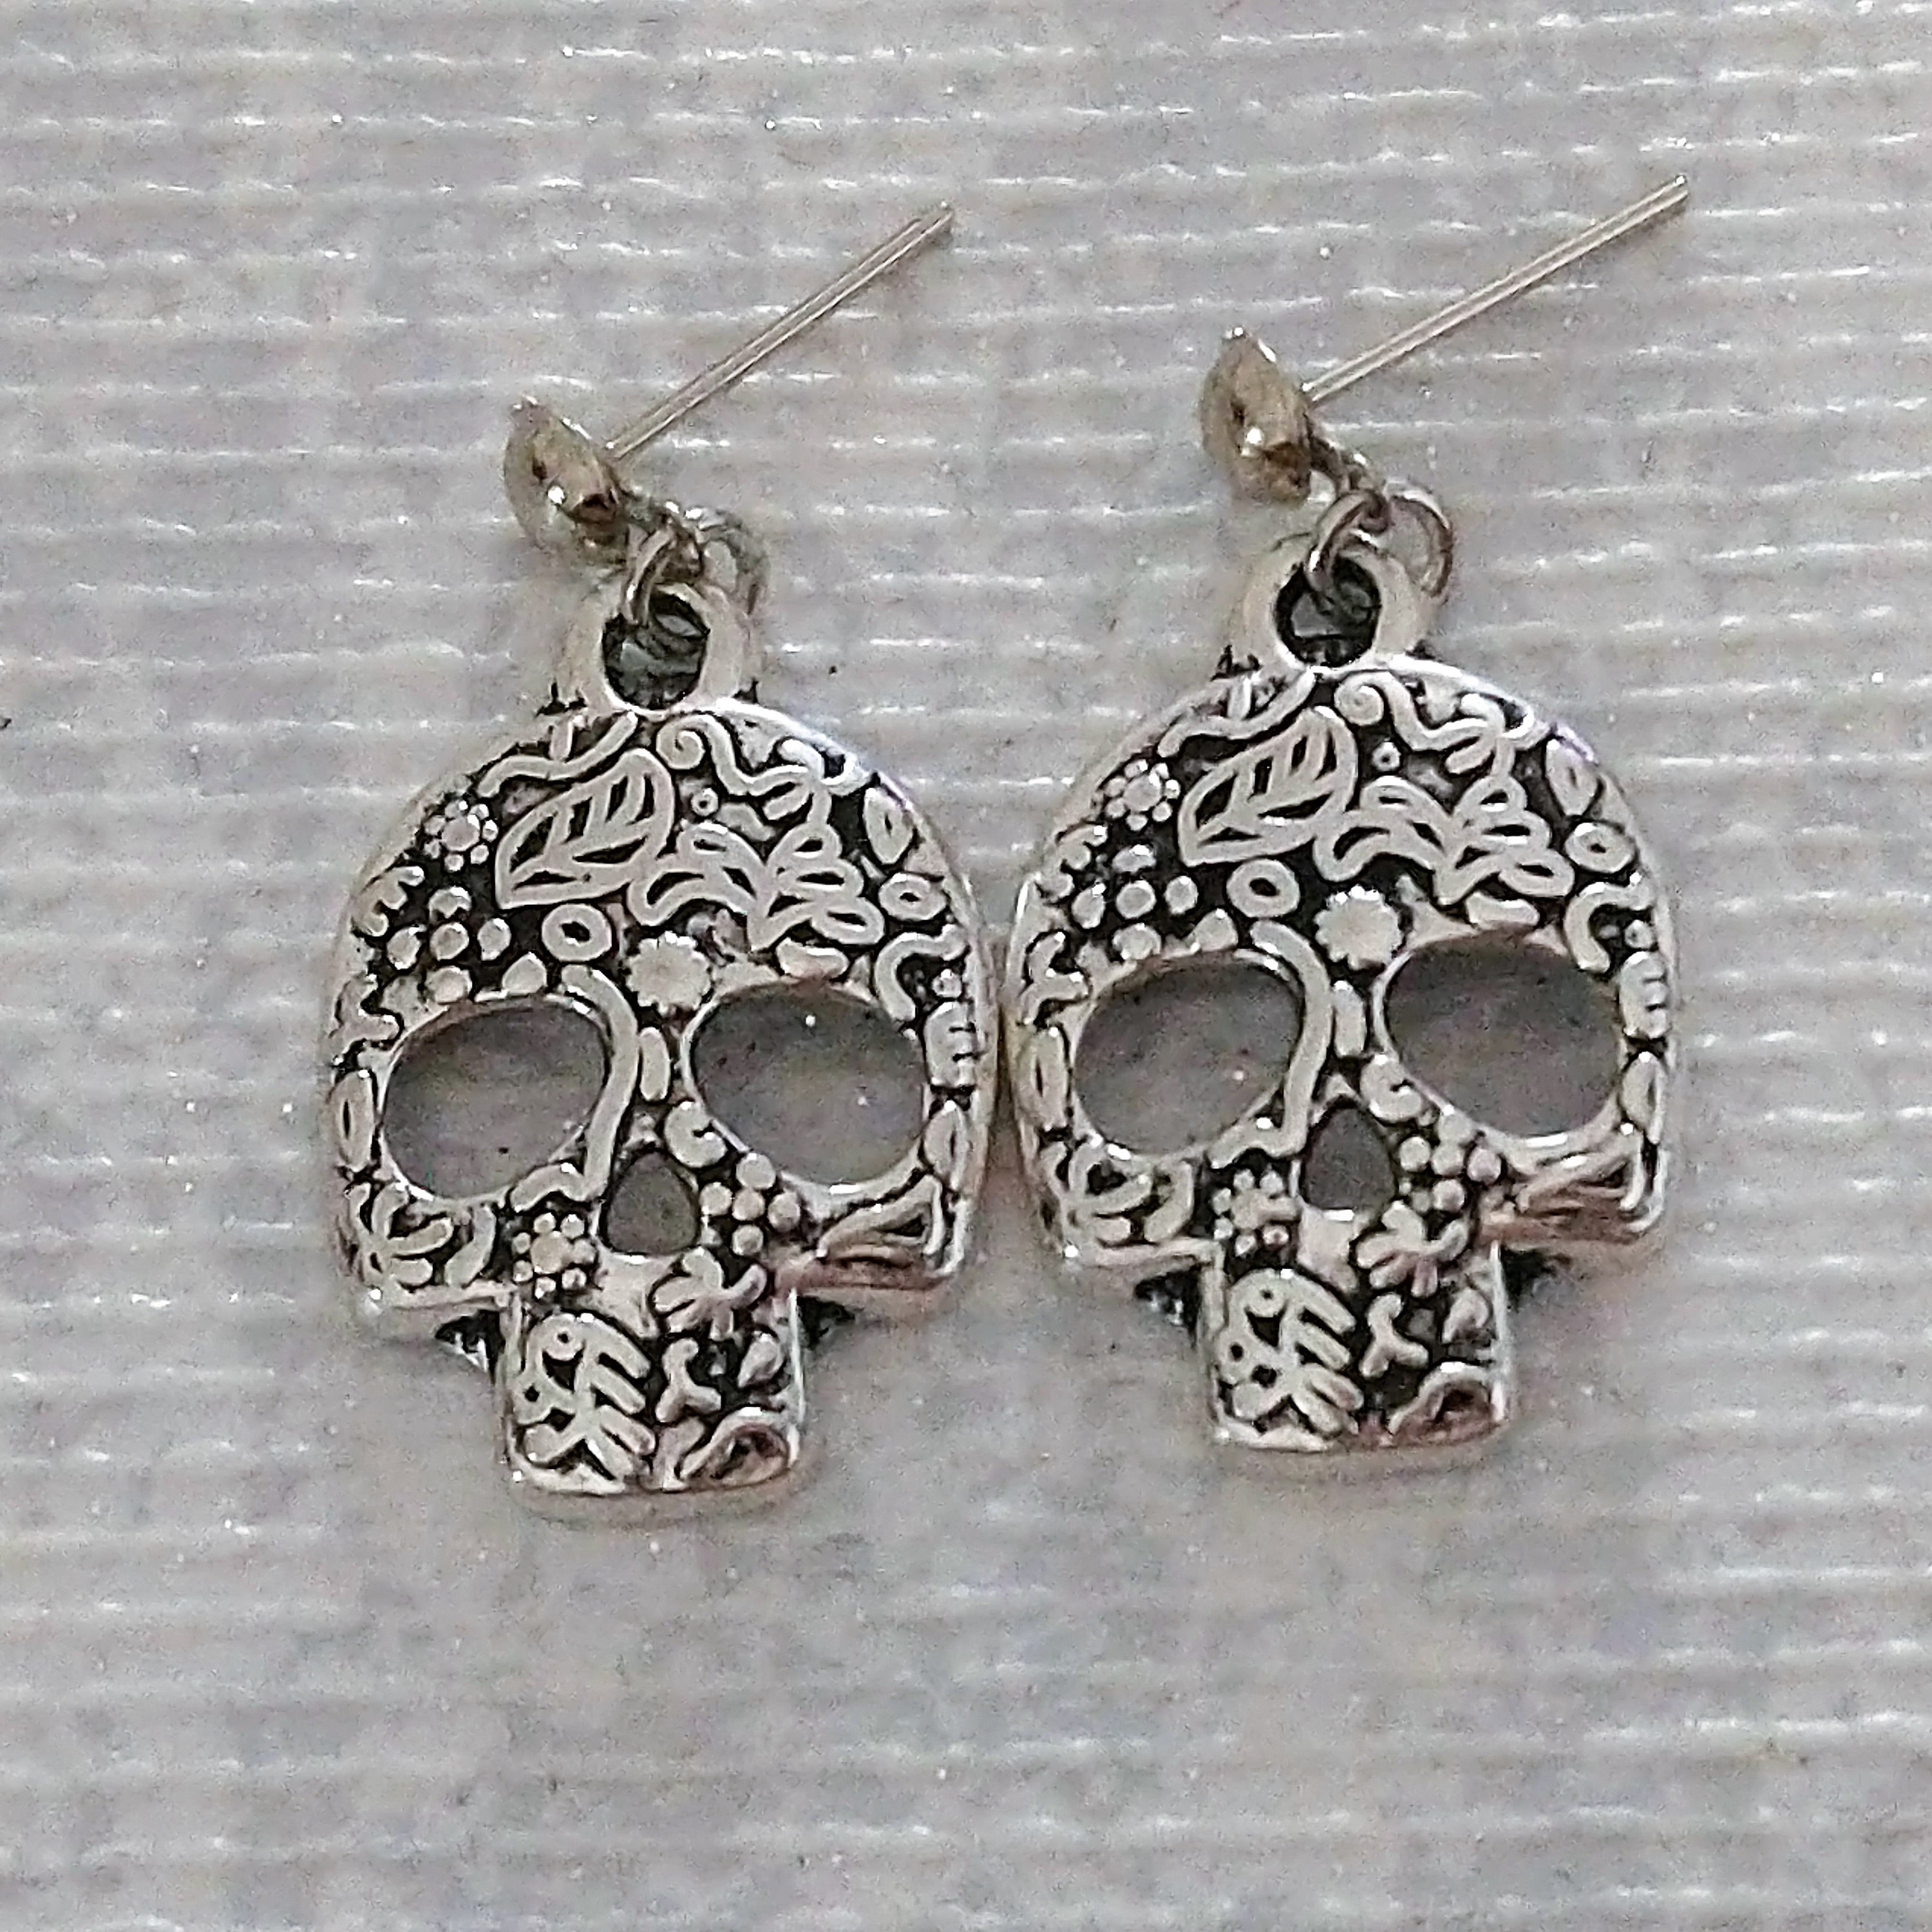 Sugar Skull Earrings.  Fab Gothic or Spooky Present or Gift.   Día de los Muertos Gift for Her. 00090